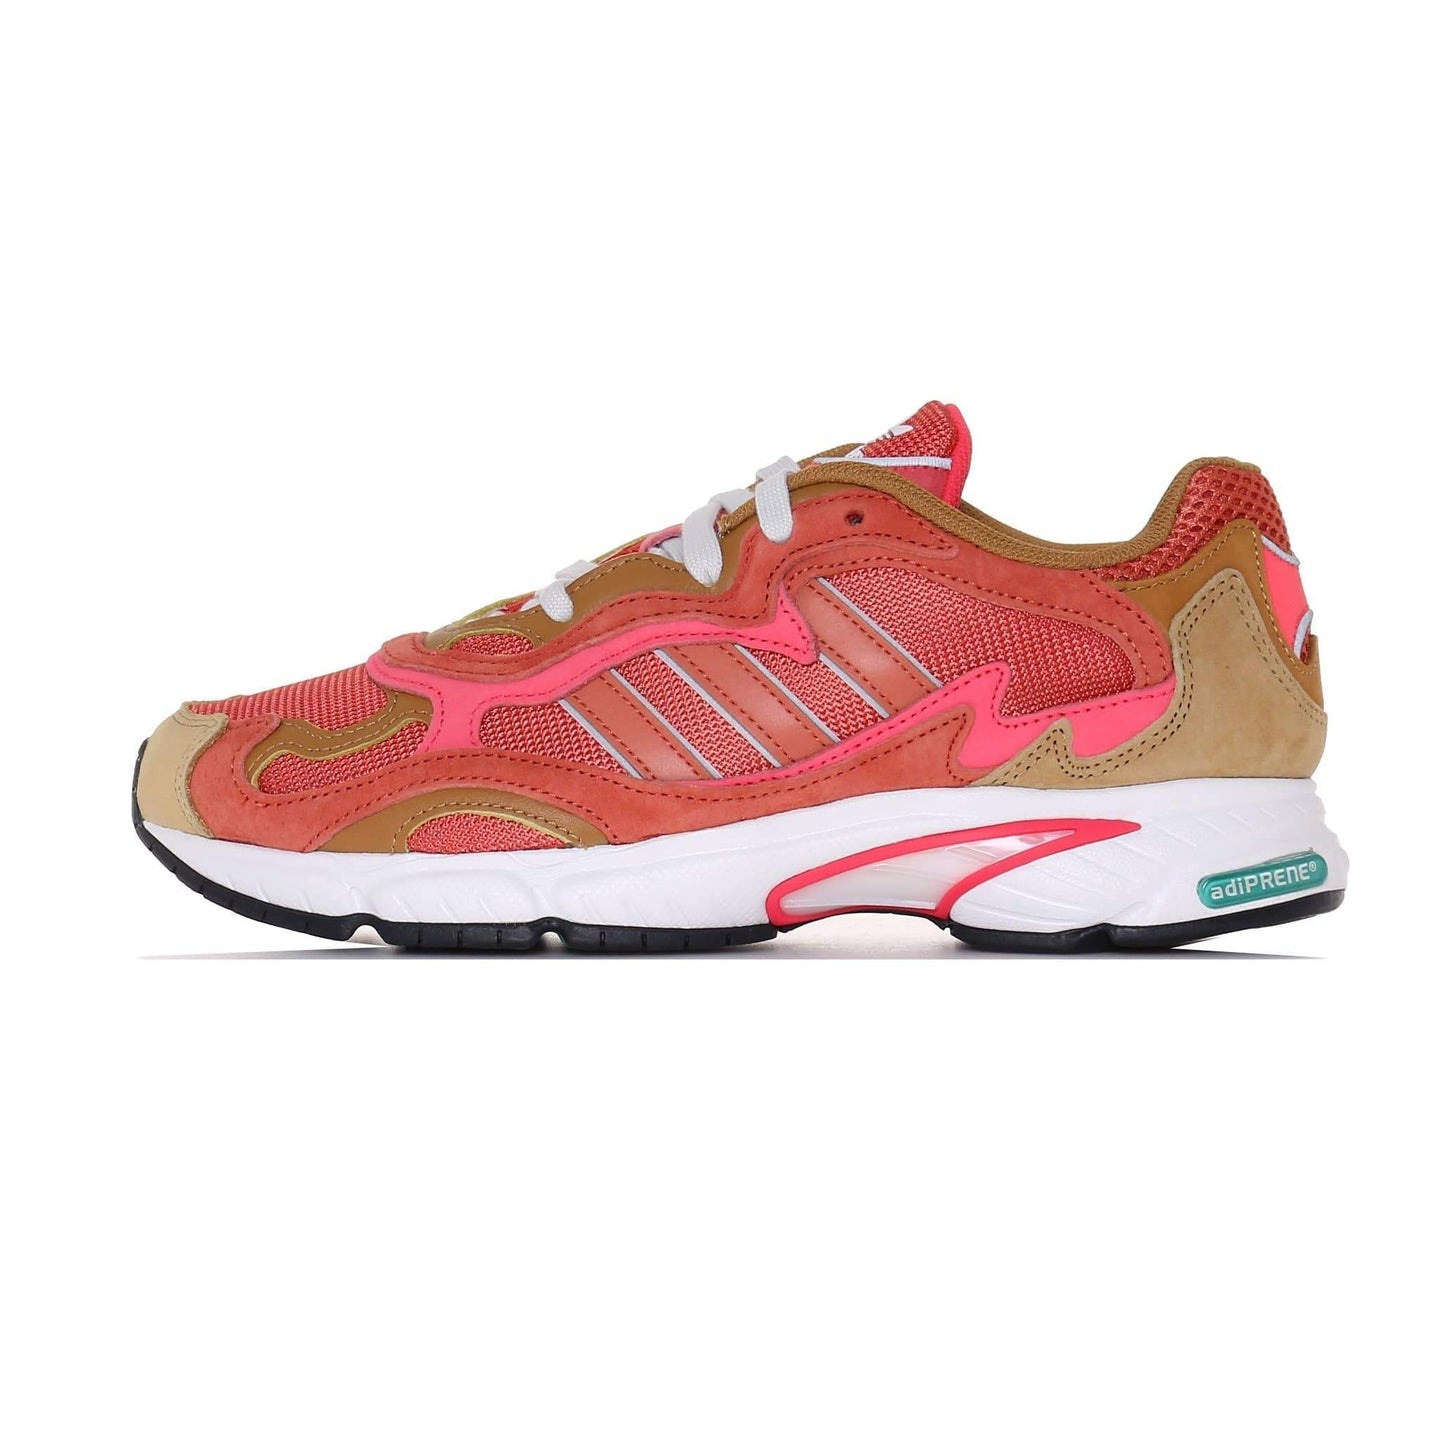 Adidas Originals Temper Run - Raw Amber / Core Black UK 7 G279227 4060516517931 Adidas Originals Trainers